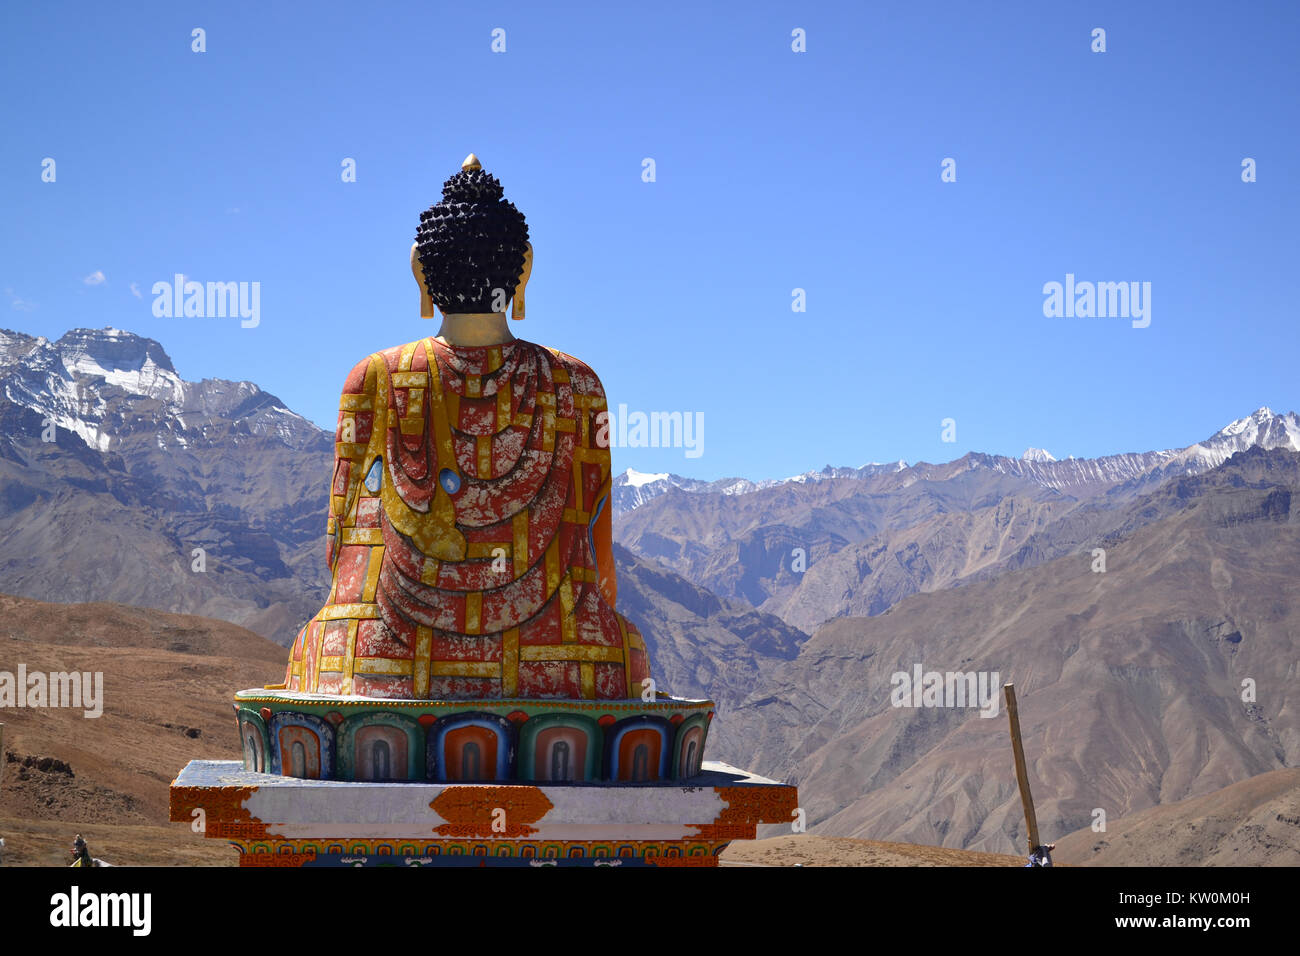 Buddha Statue looking out over the Himalayas, Langza, Himachal Pradesh - Stock Image